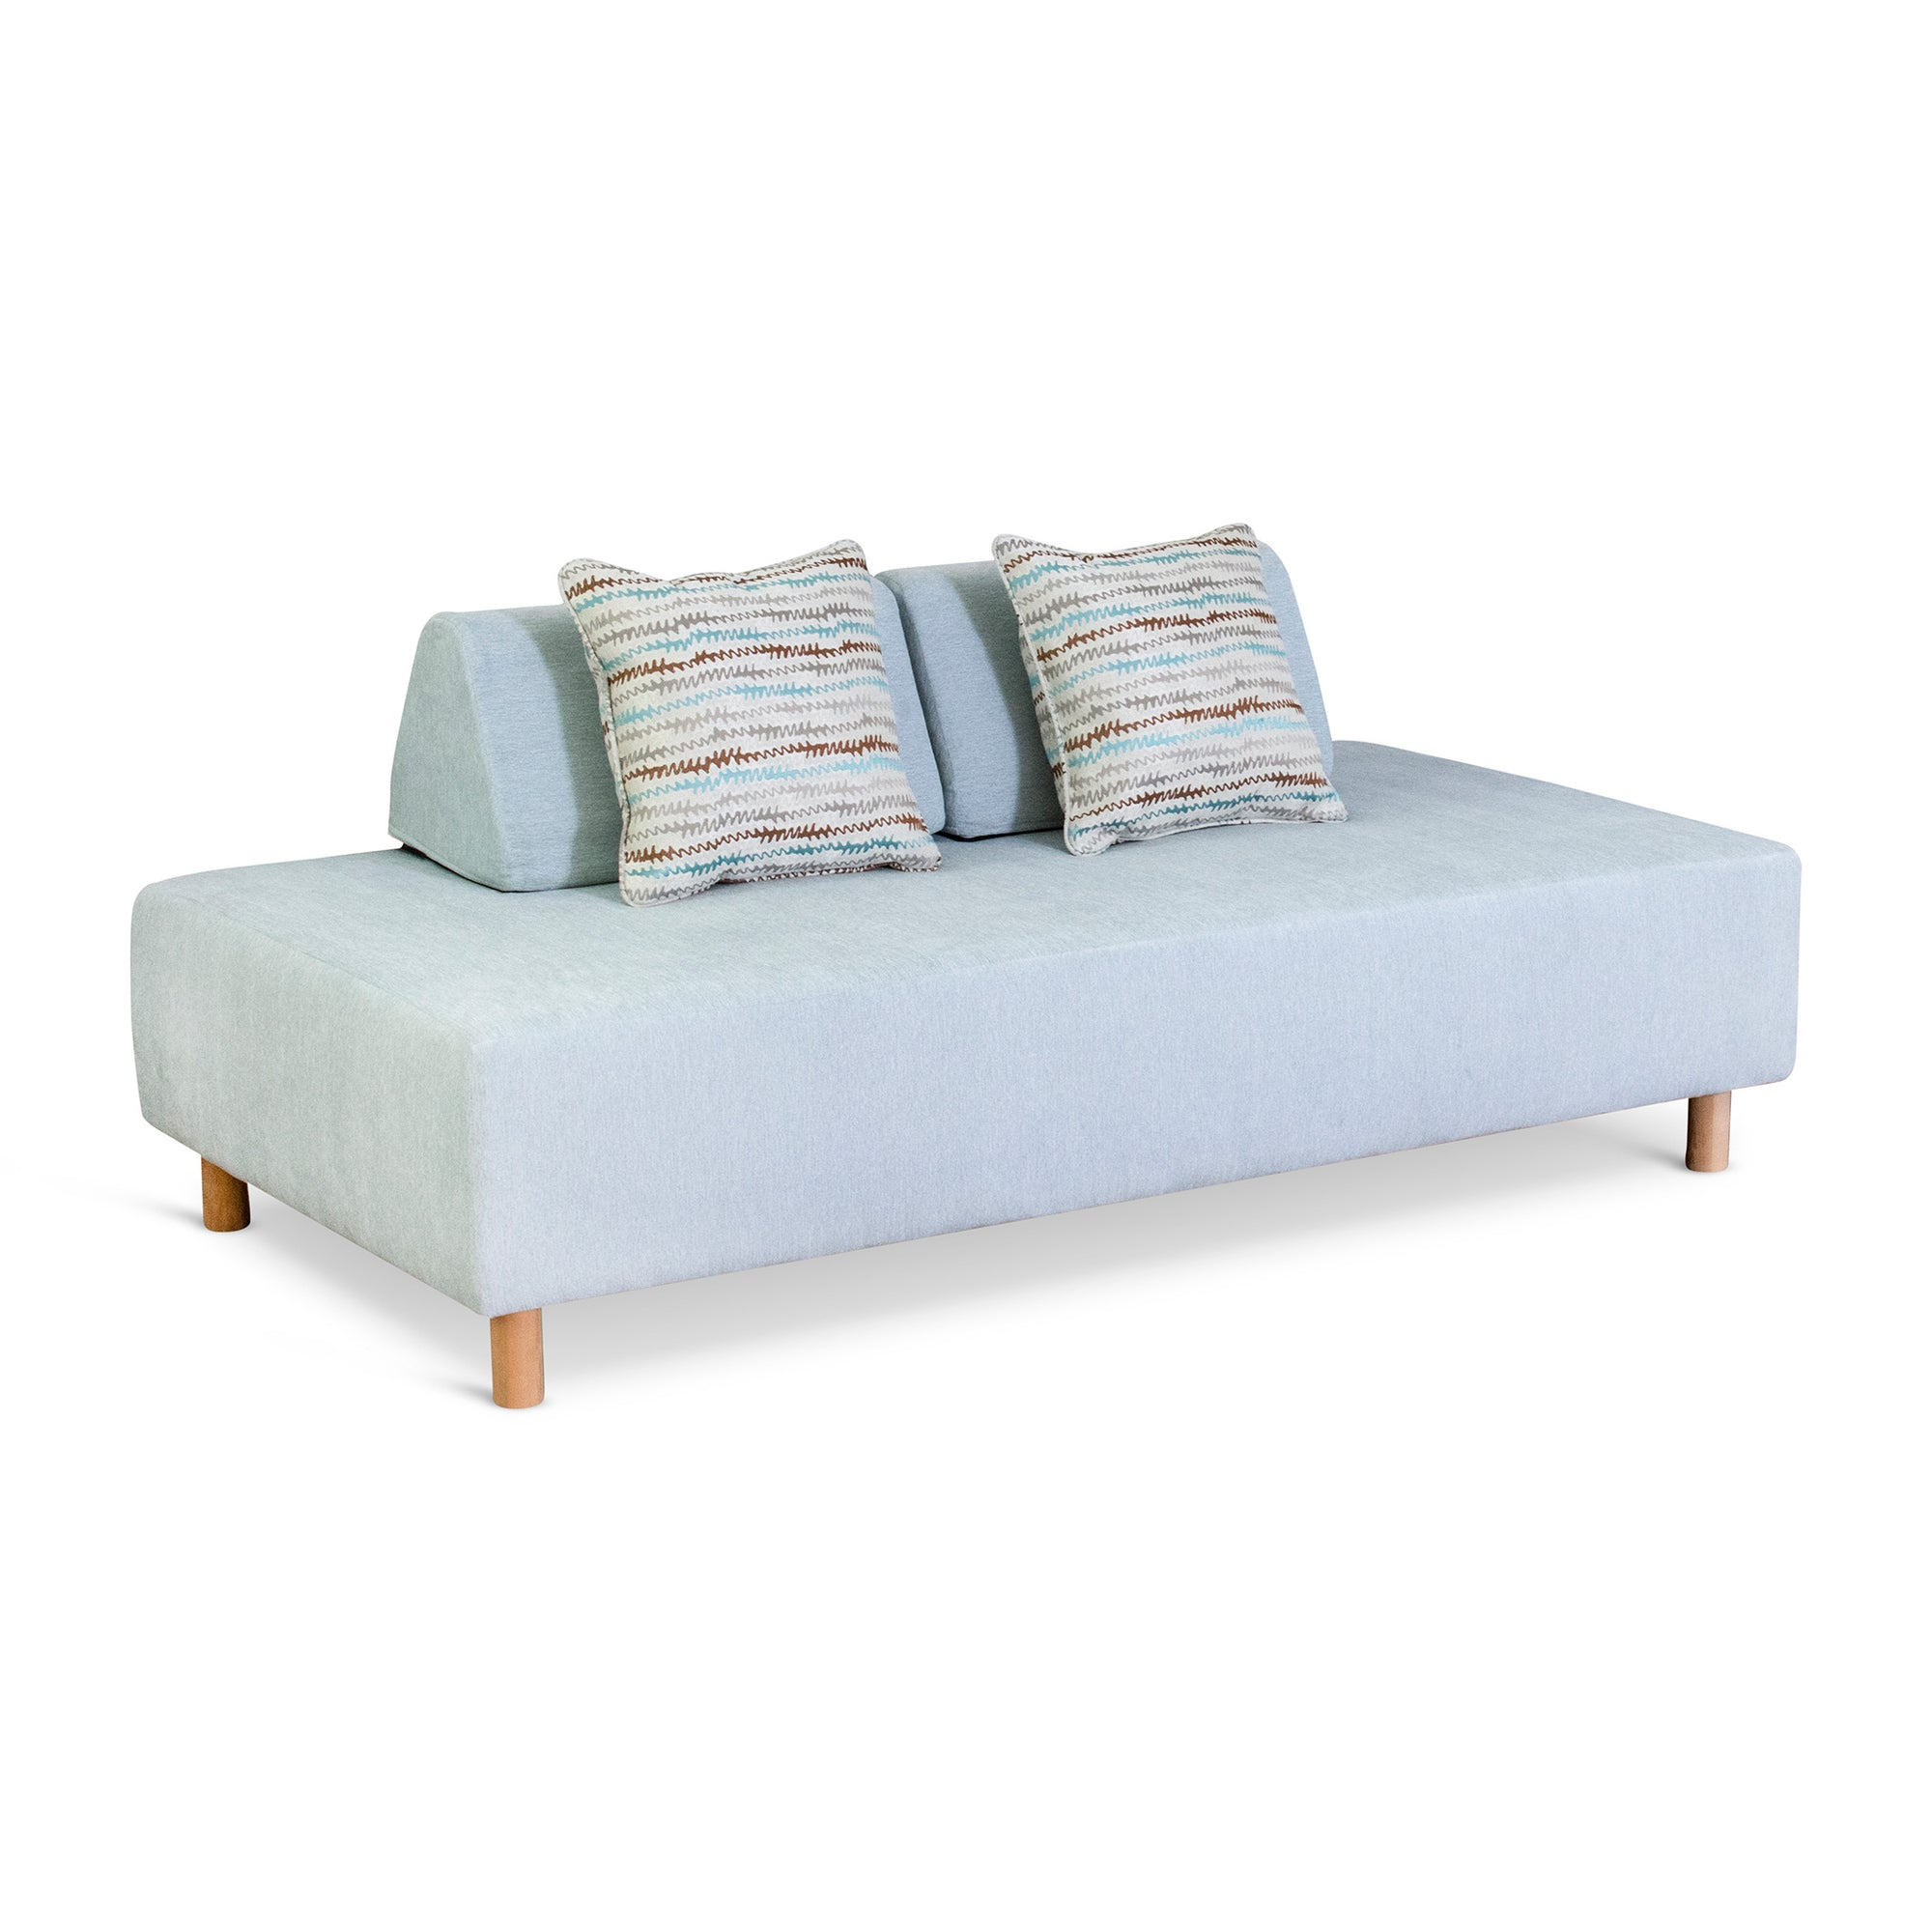 Osler Daybed with 2 Wedges